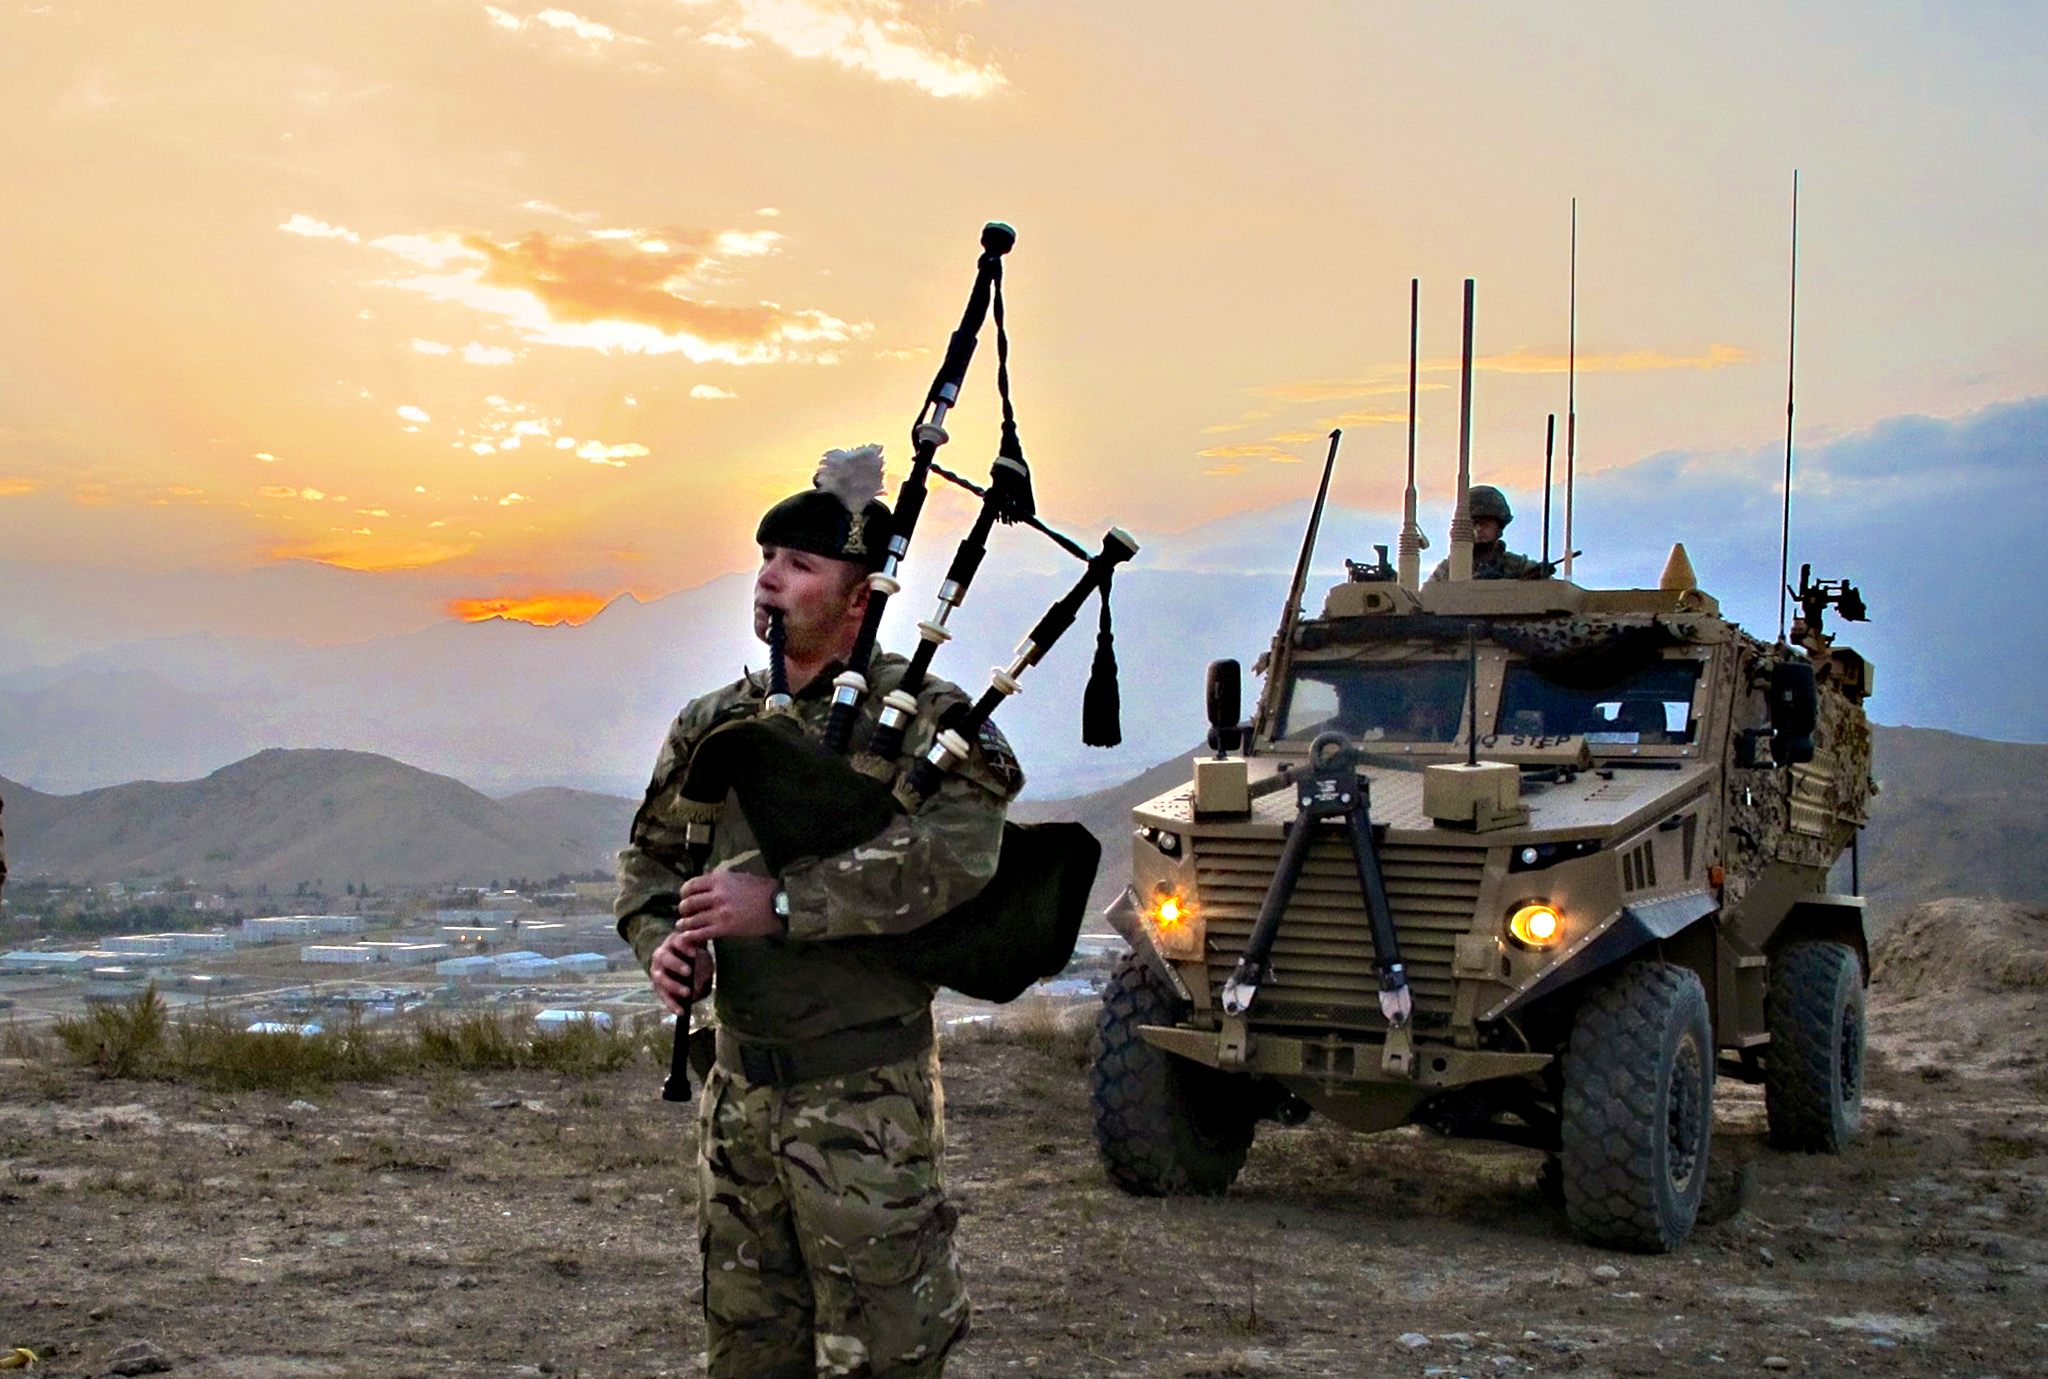 Corporal Kevin Glover (28) from Palnacki, Dumfries and Galloway, piping outside the battalion s base at Camp Qargha to celebrate St Andrew s Day